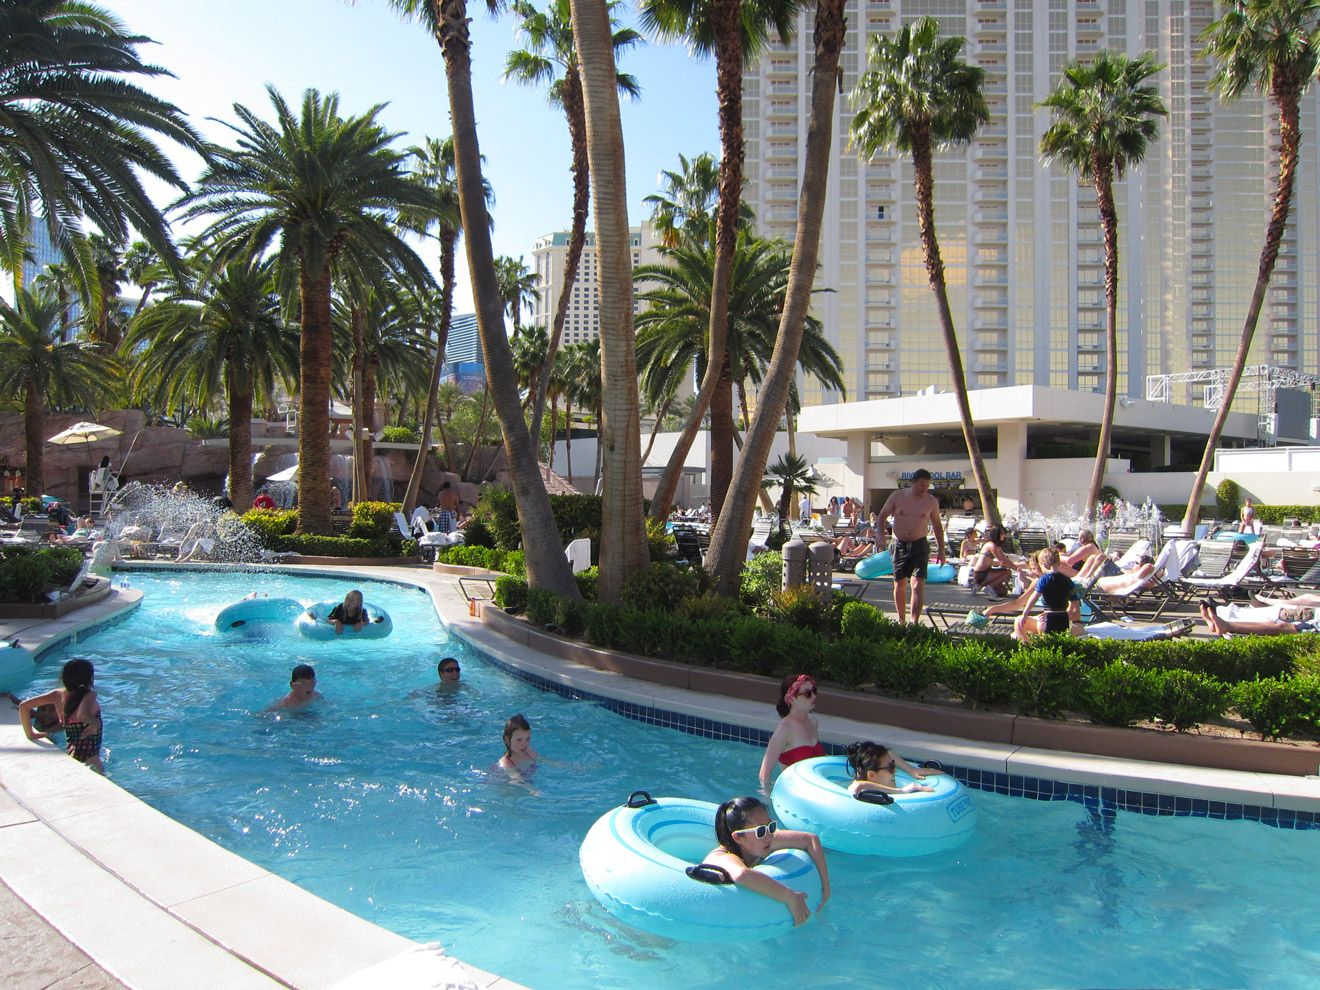 Flamingo Las Vegas Kid Pool Best Family Pools In Las Vegas For Kids Family Pool